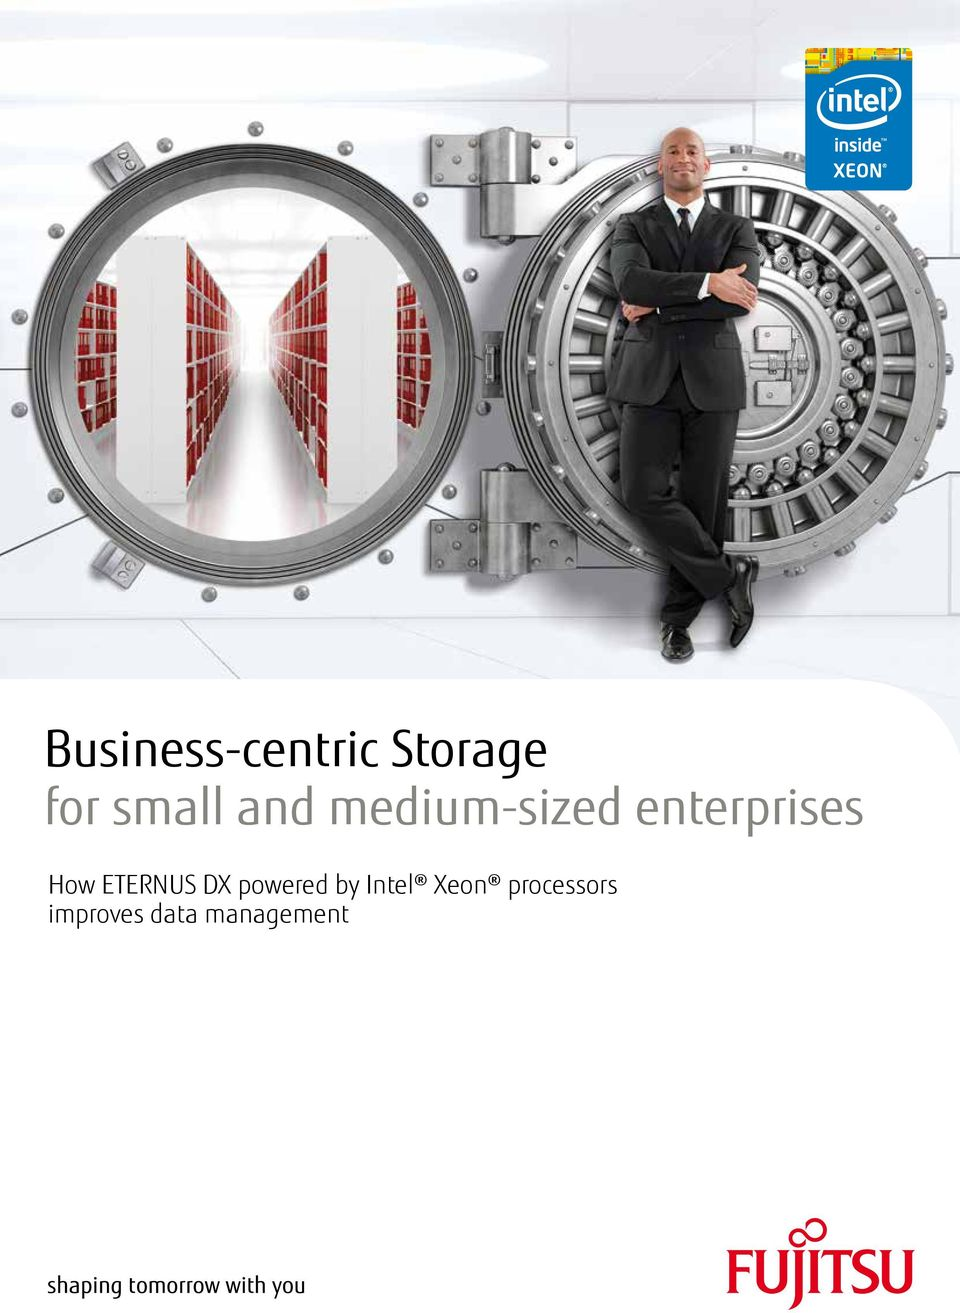 enterprises How DX powered by